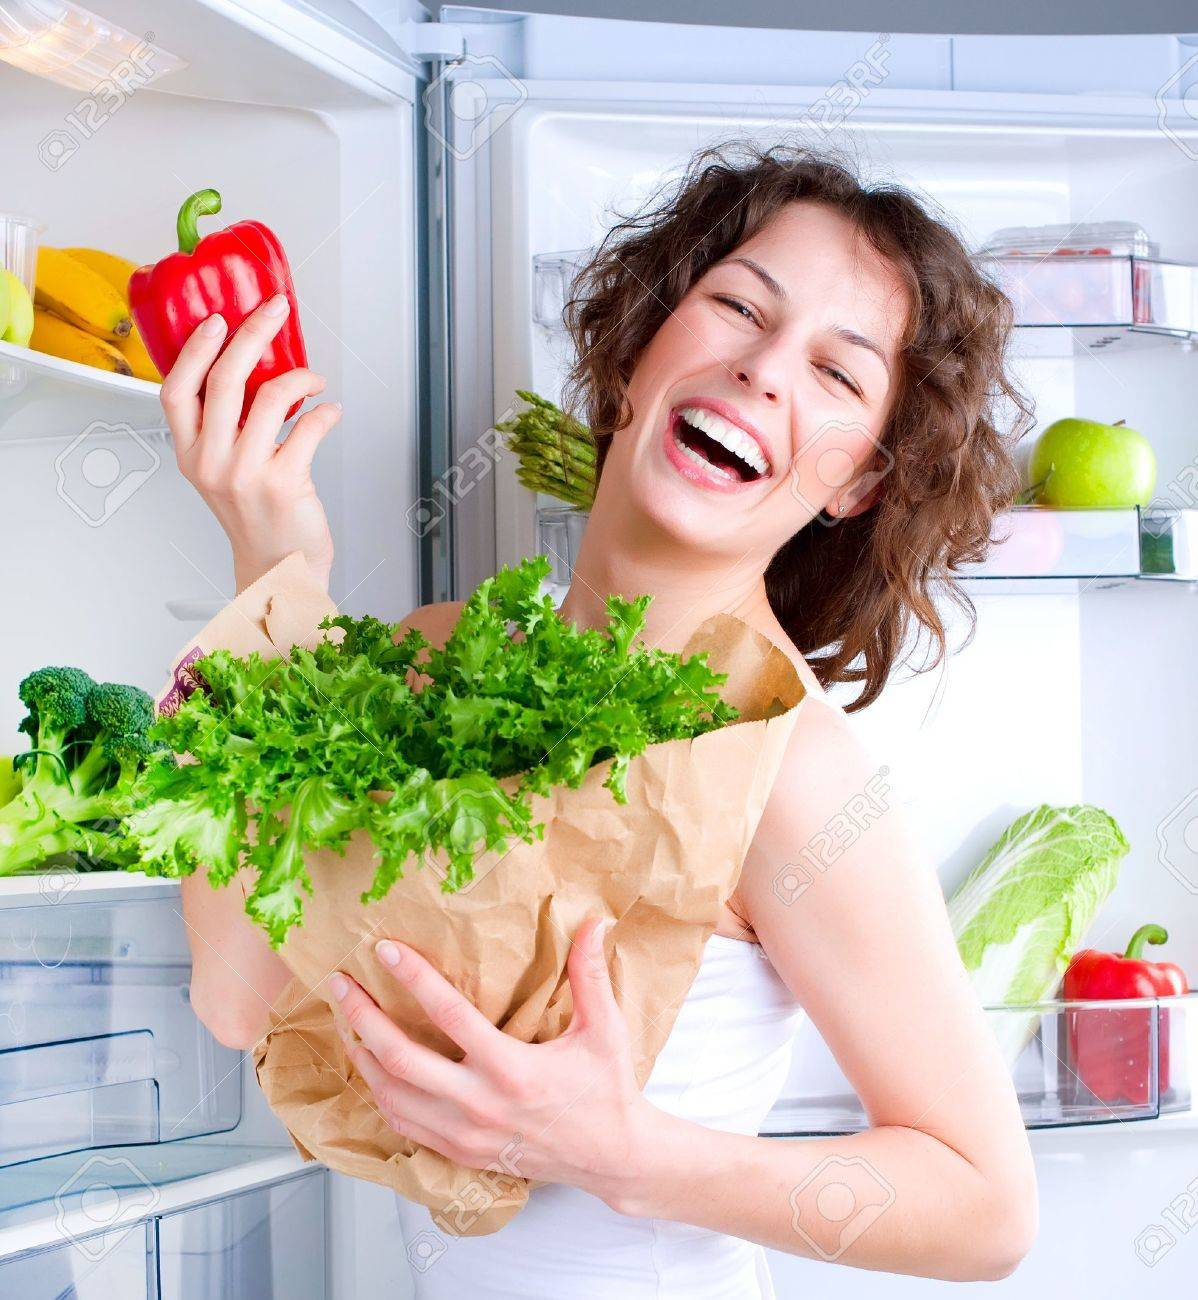 Beautiful Young Woman near the Refrigerator with healthy food - 13064625